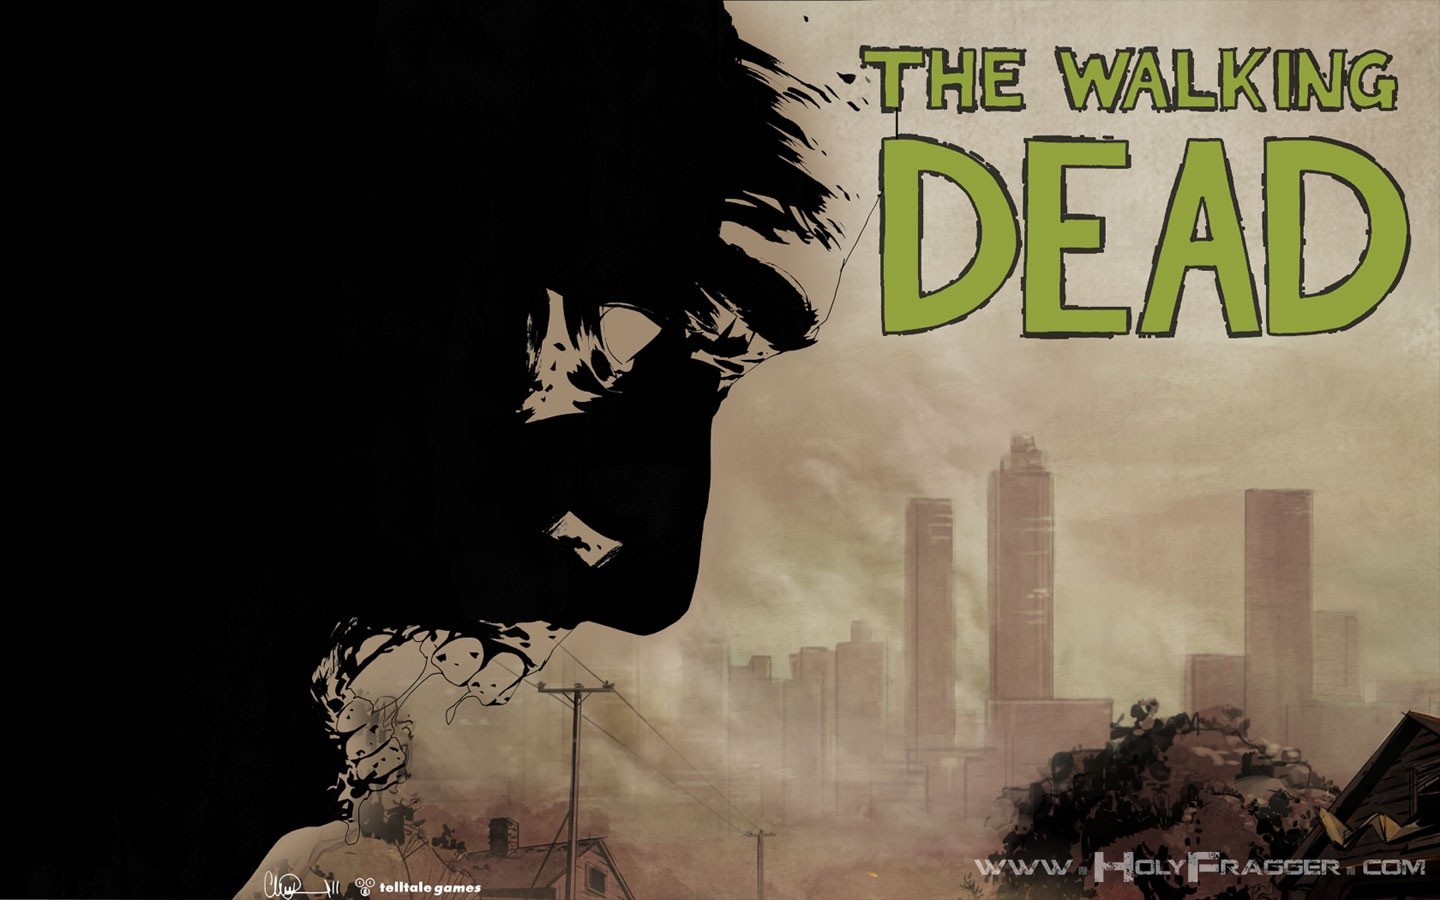 The Walking Dead Game images TWD HD wallpaper and background photos